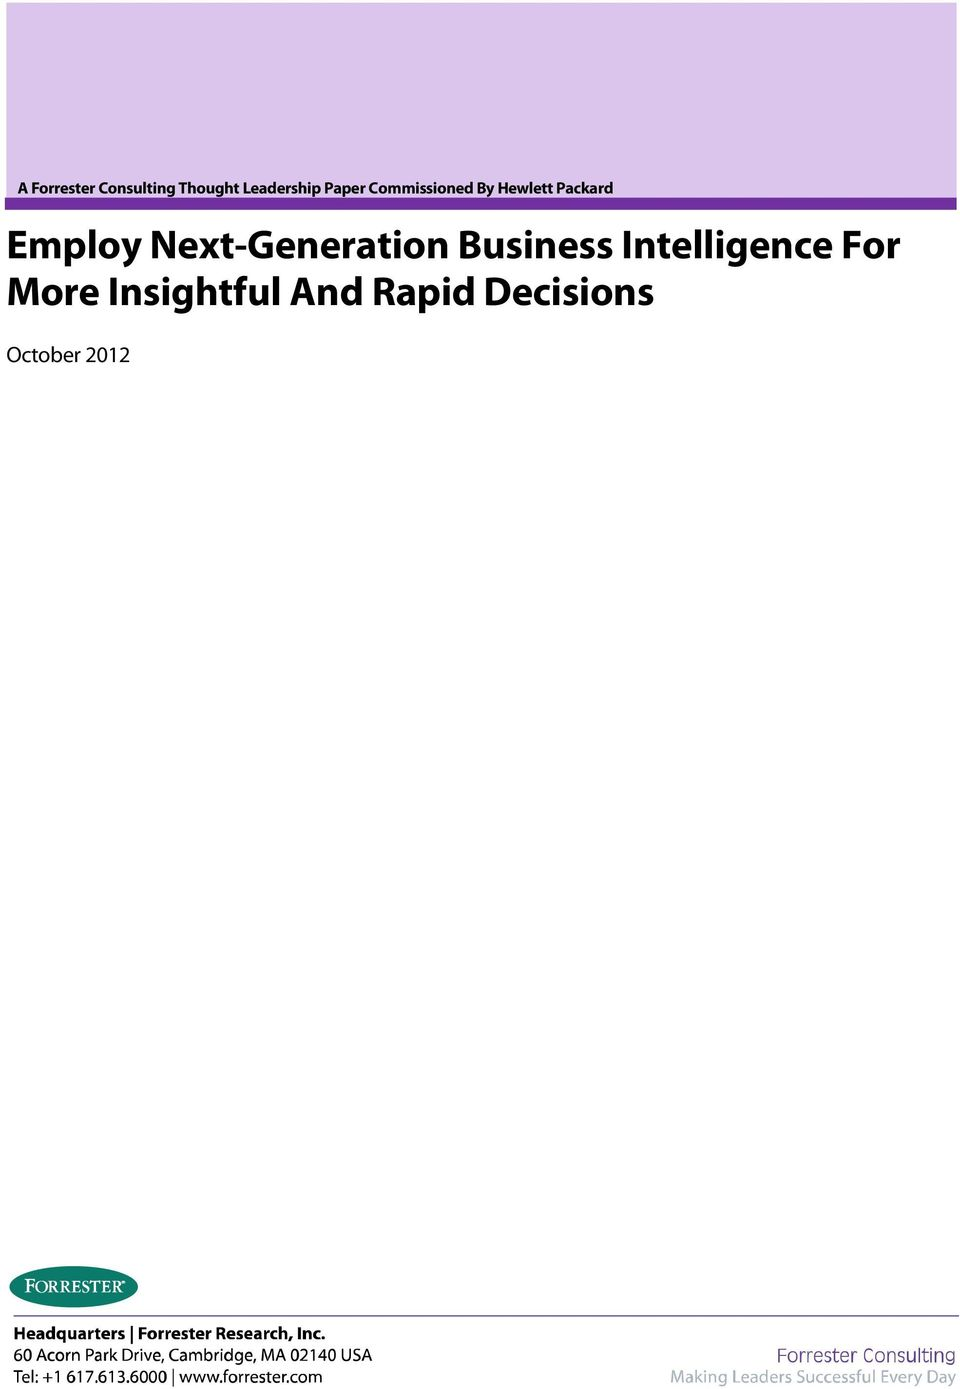 Next-Generation Business Intelligence For